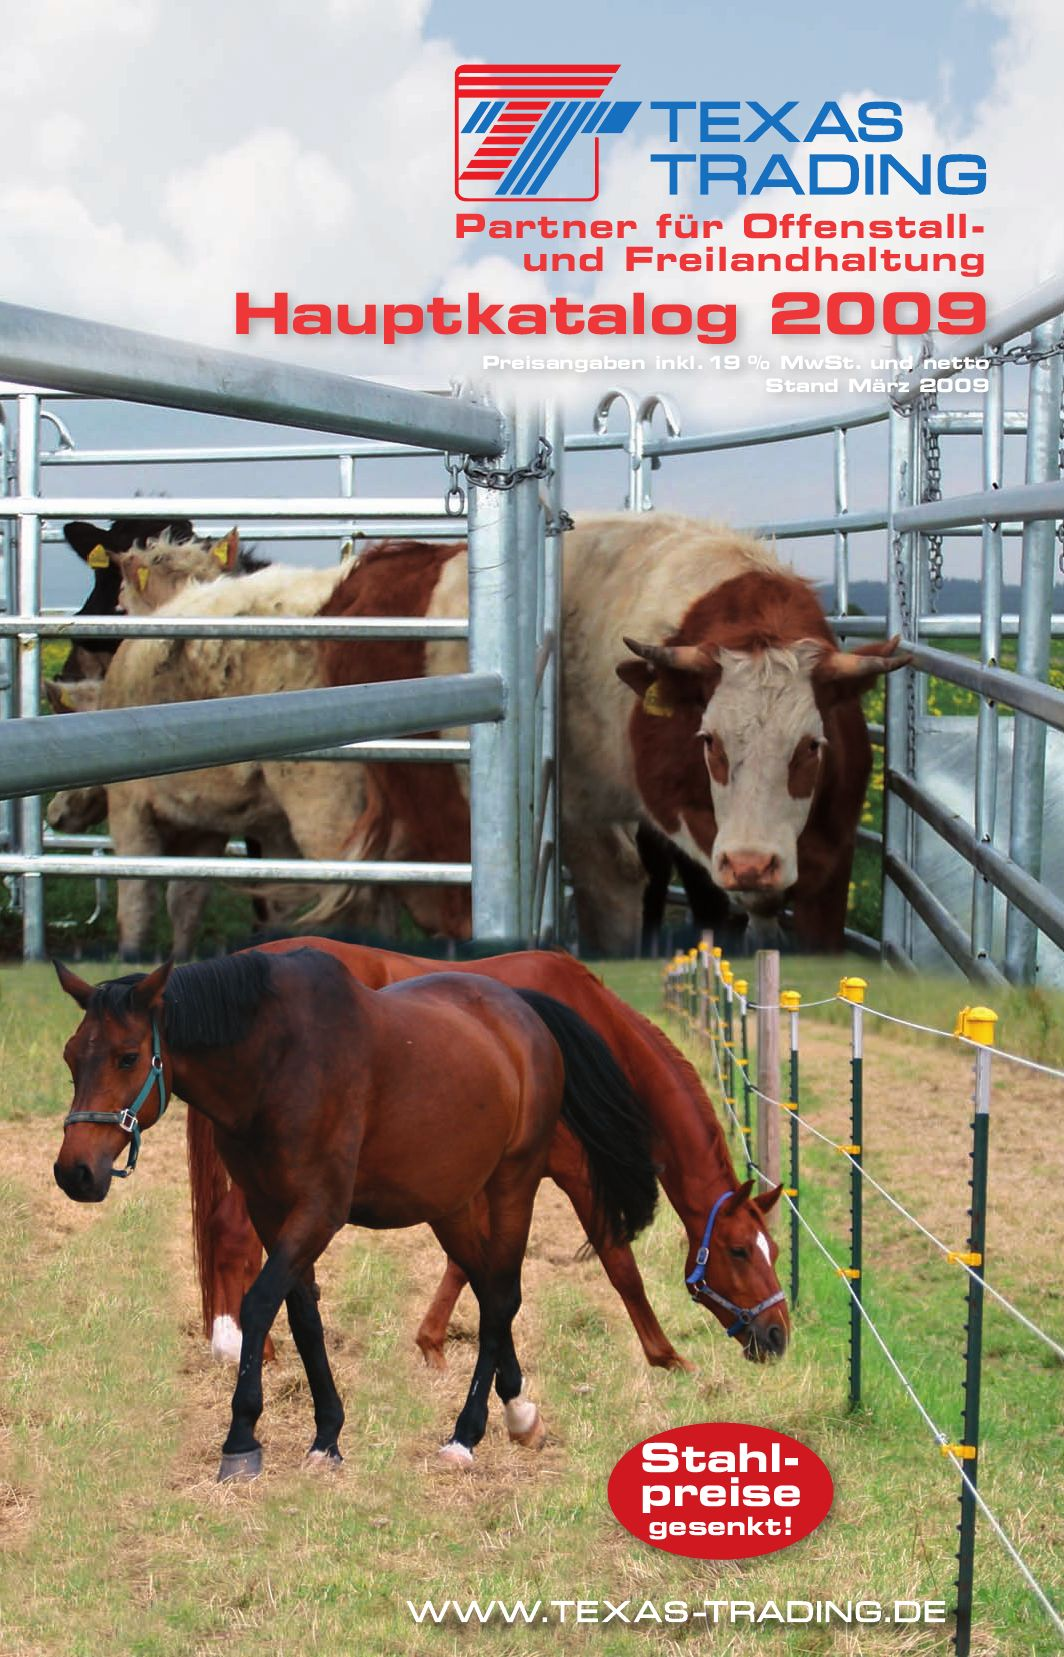 TEXAS TRADING Hauptkatalog 2009 by Dominik Ort - issuu